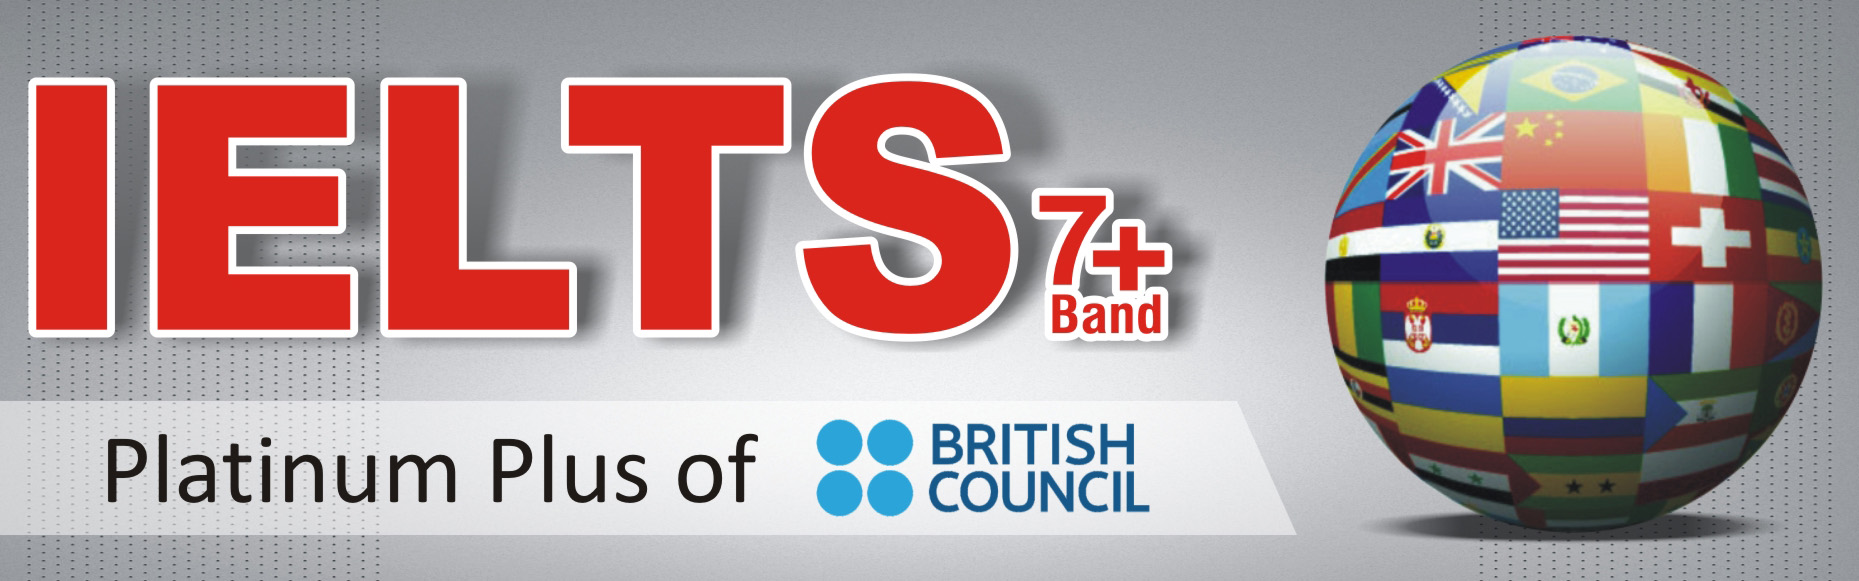 IELTS exam help online| Buy ielts